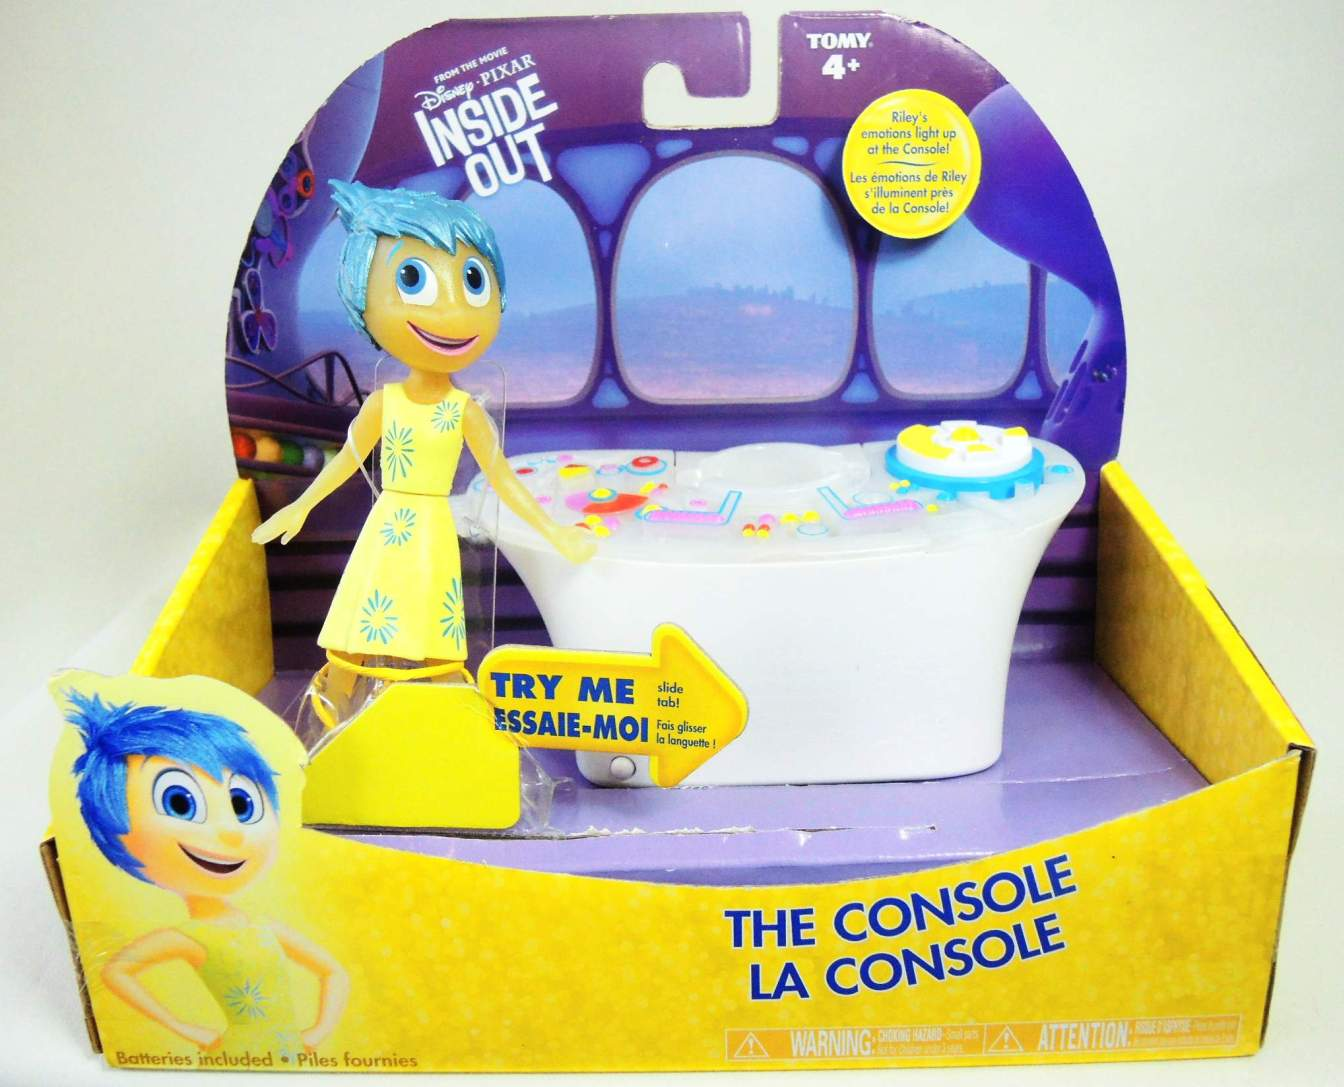 Disney Pixar Inside Out - Console with Joy figure Tomy, Inside Out, Action Figures, 2015, kidfare, cartoon